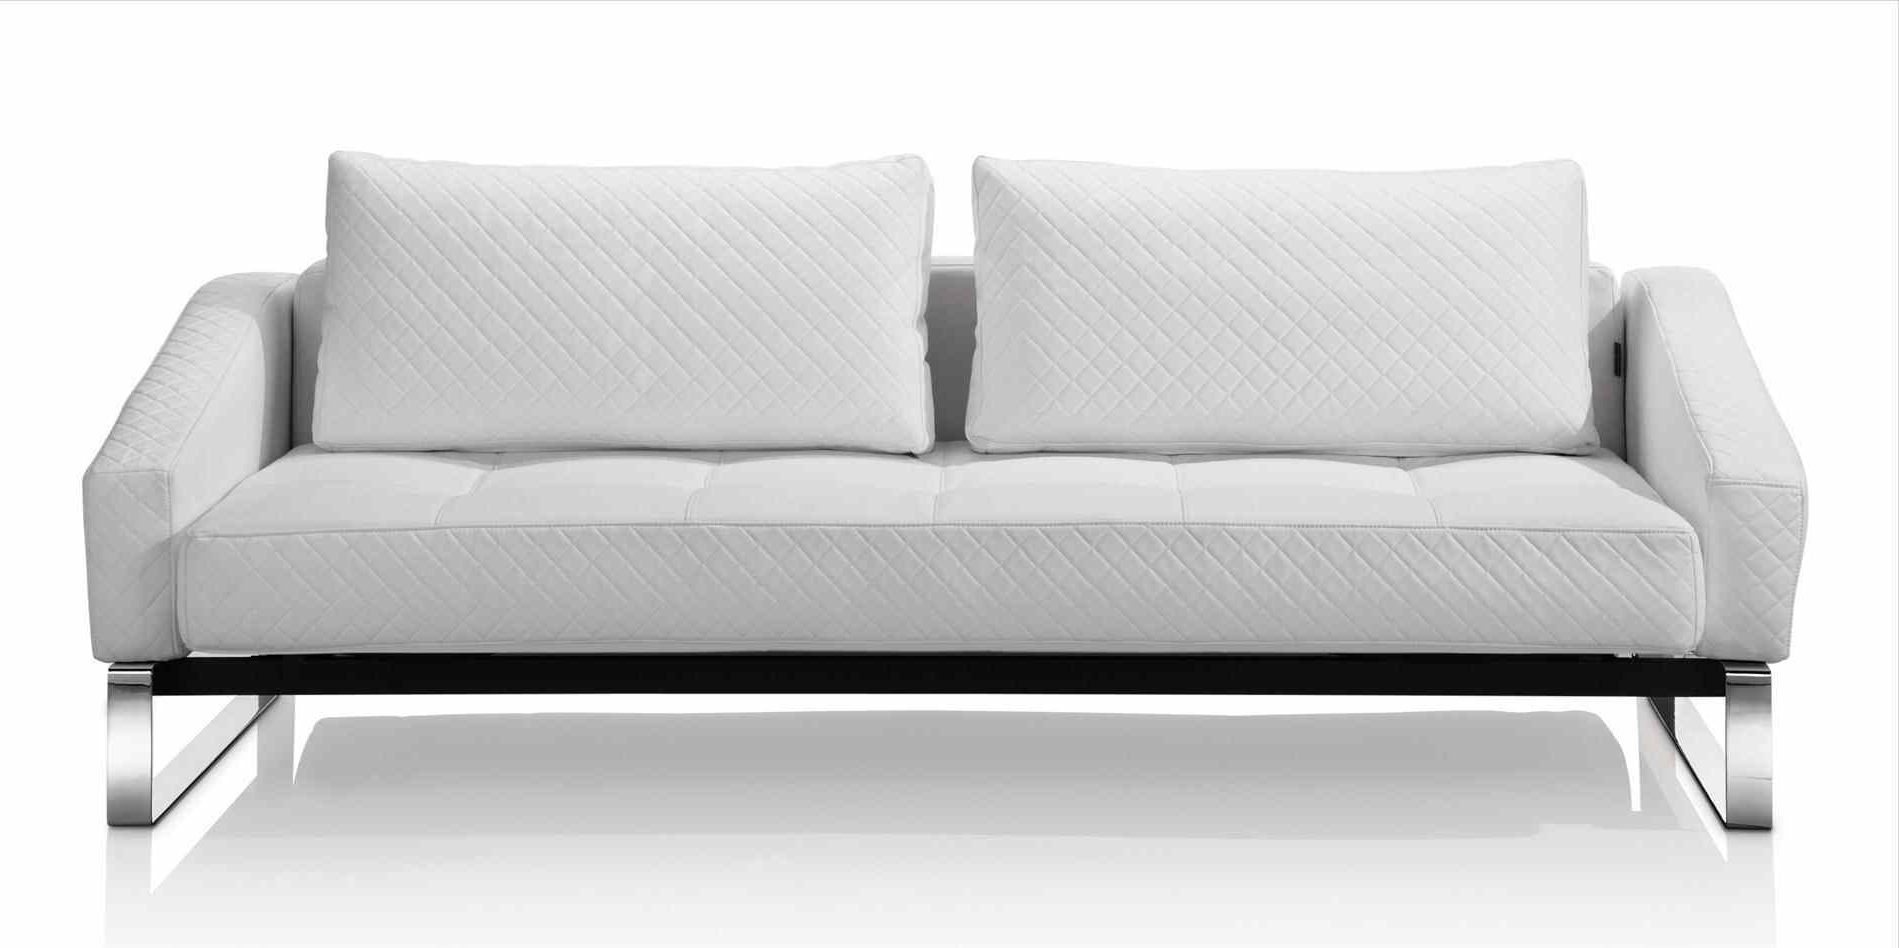 White Modern Sofas Intended For Current Sofa : Sofa Background White Modern Couch Amazing For Colette Gray (View 6 of 15)